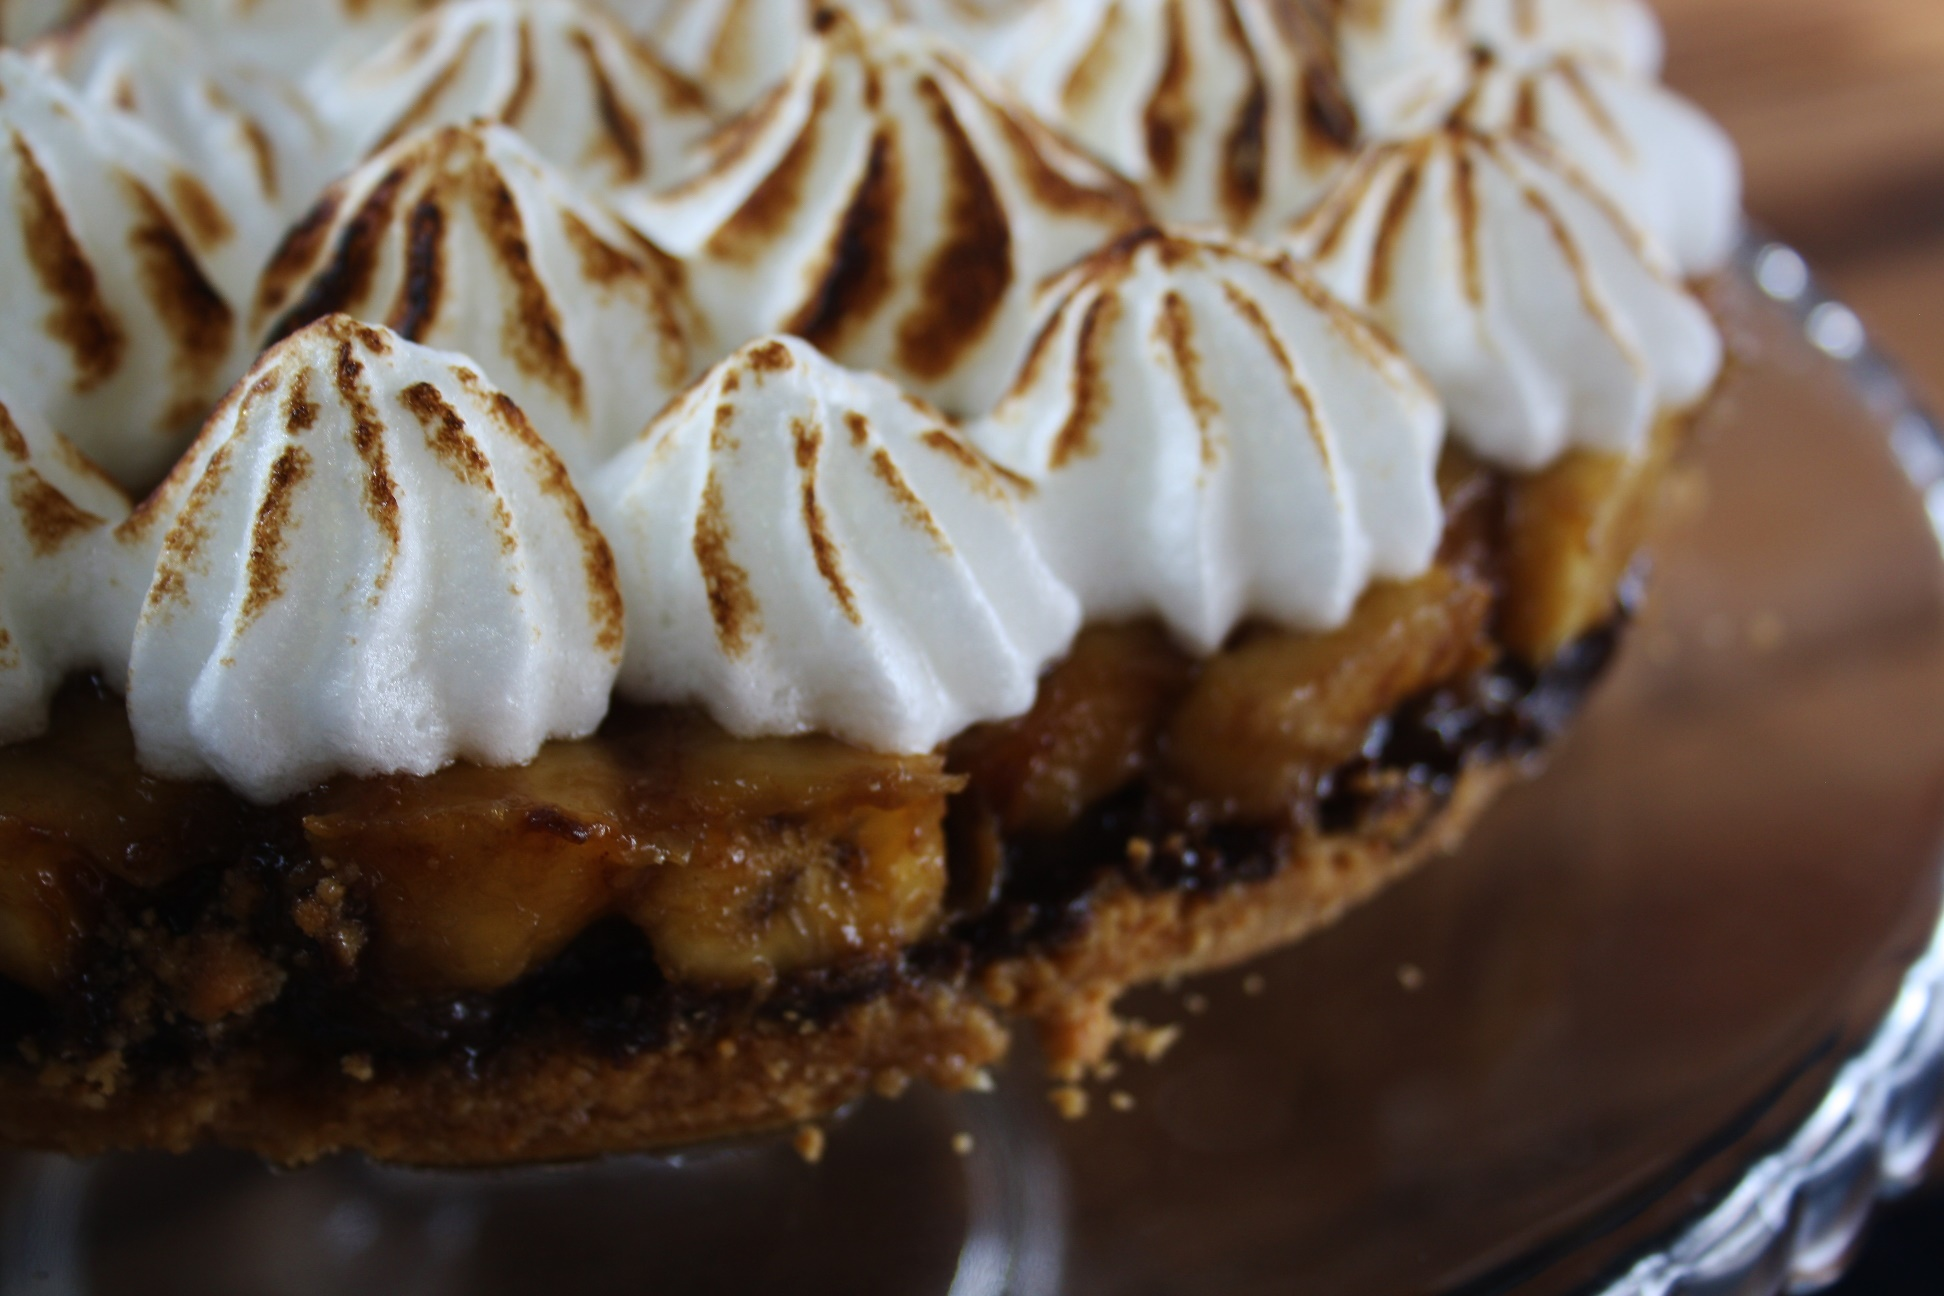 Jarred's Banoffee Pie will pull you away from the view